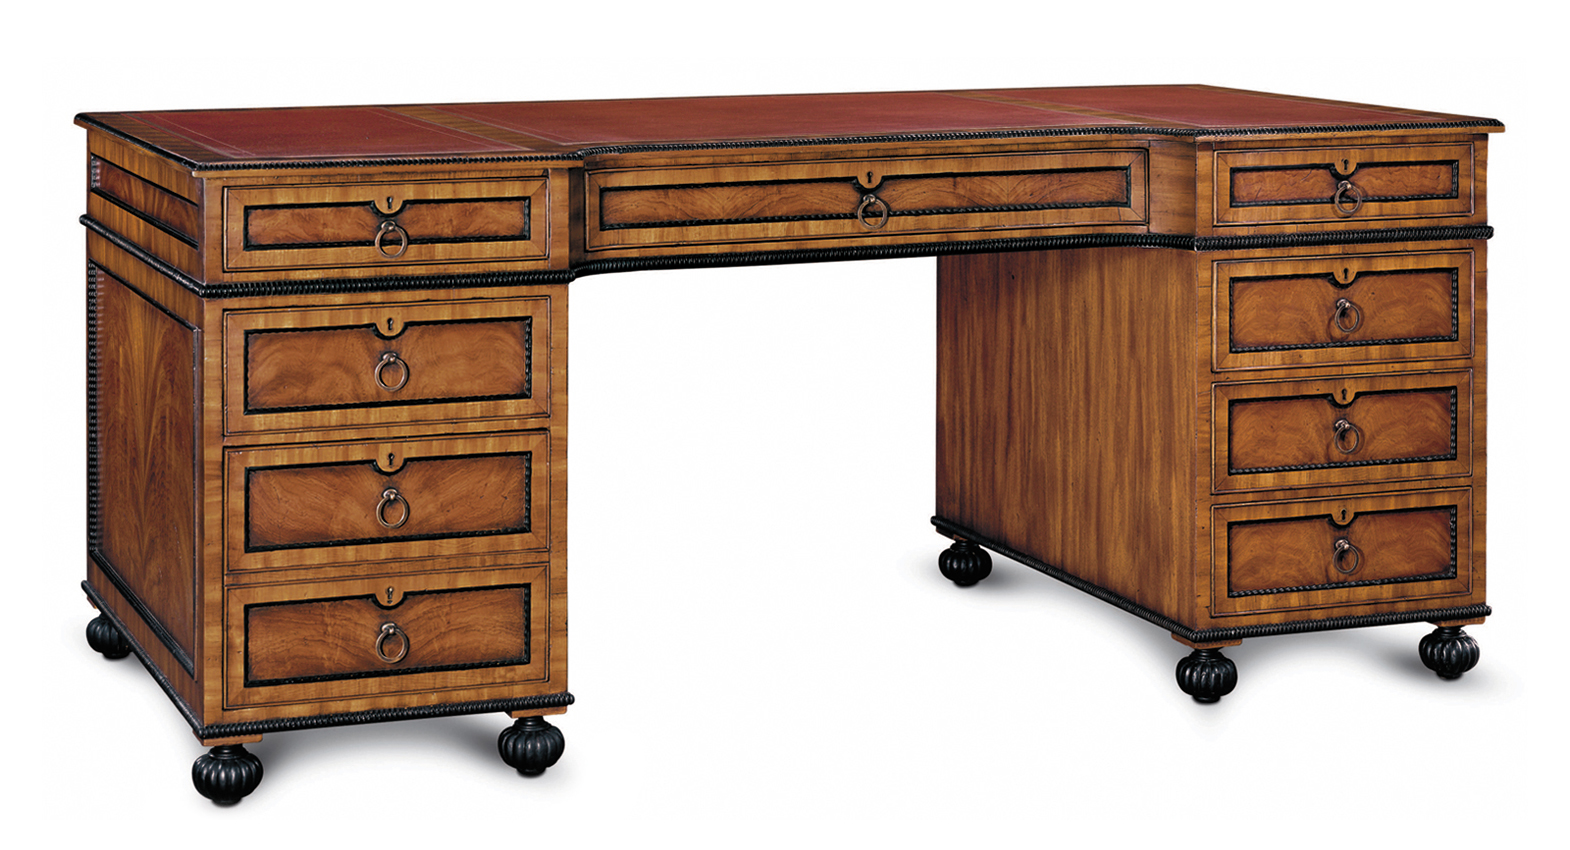 GEORGIAN EXECUTIVE DESK